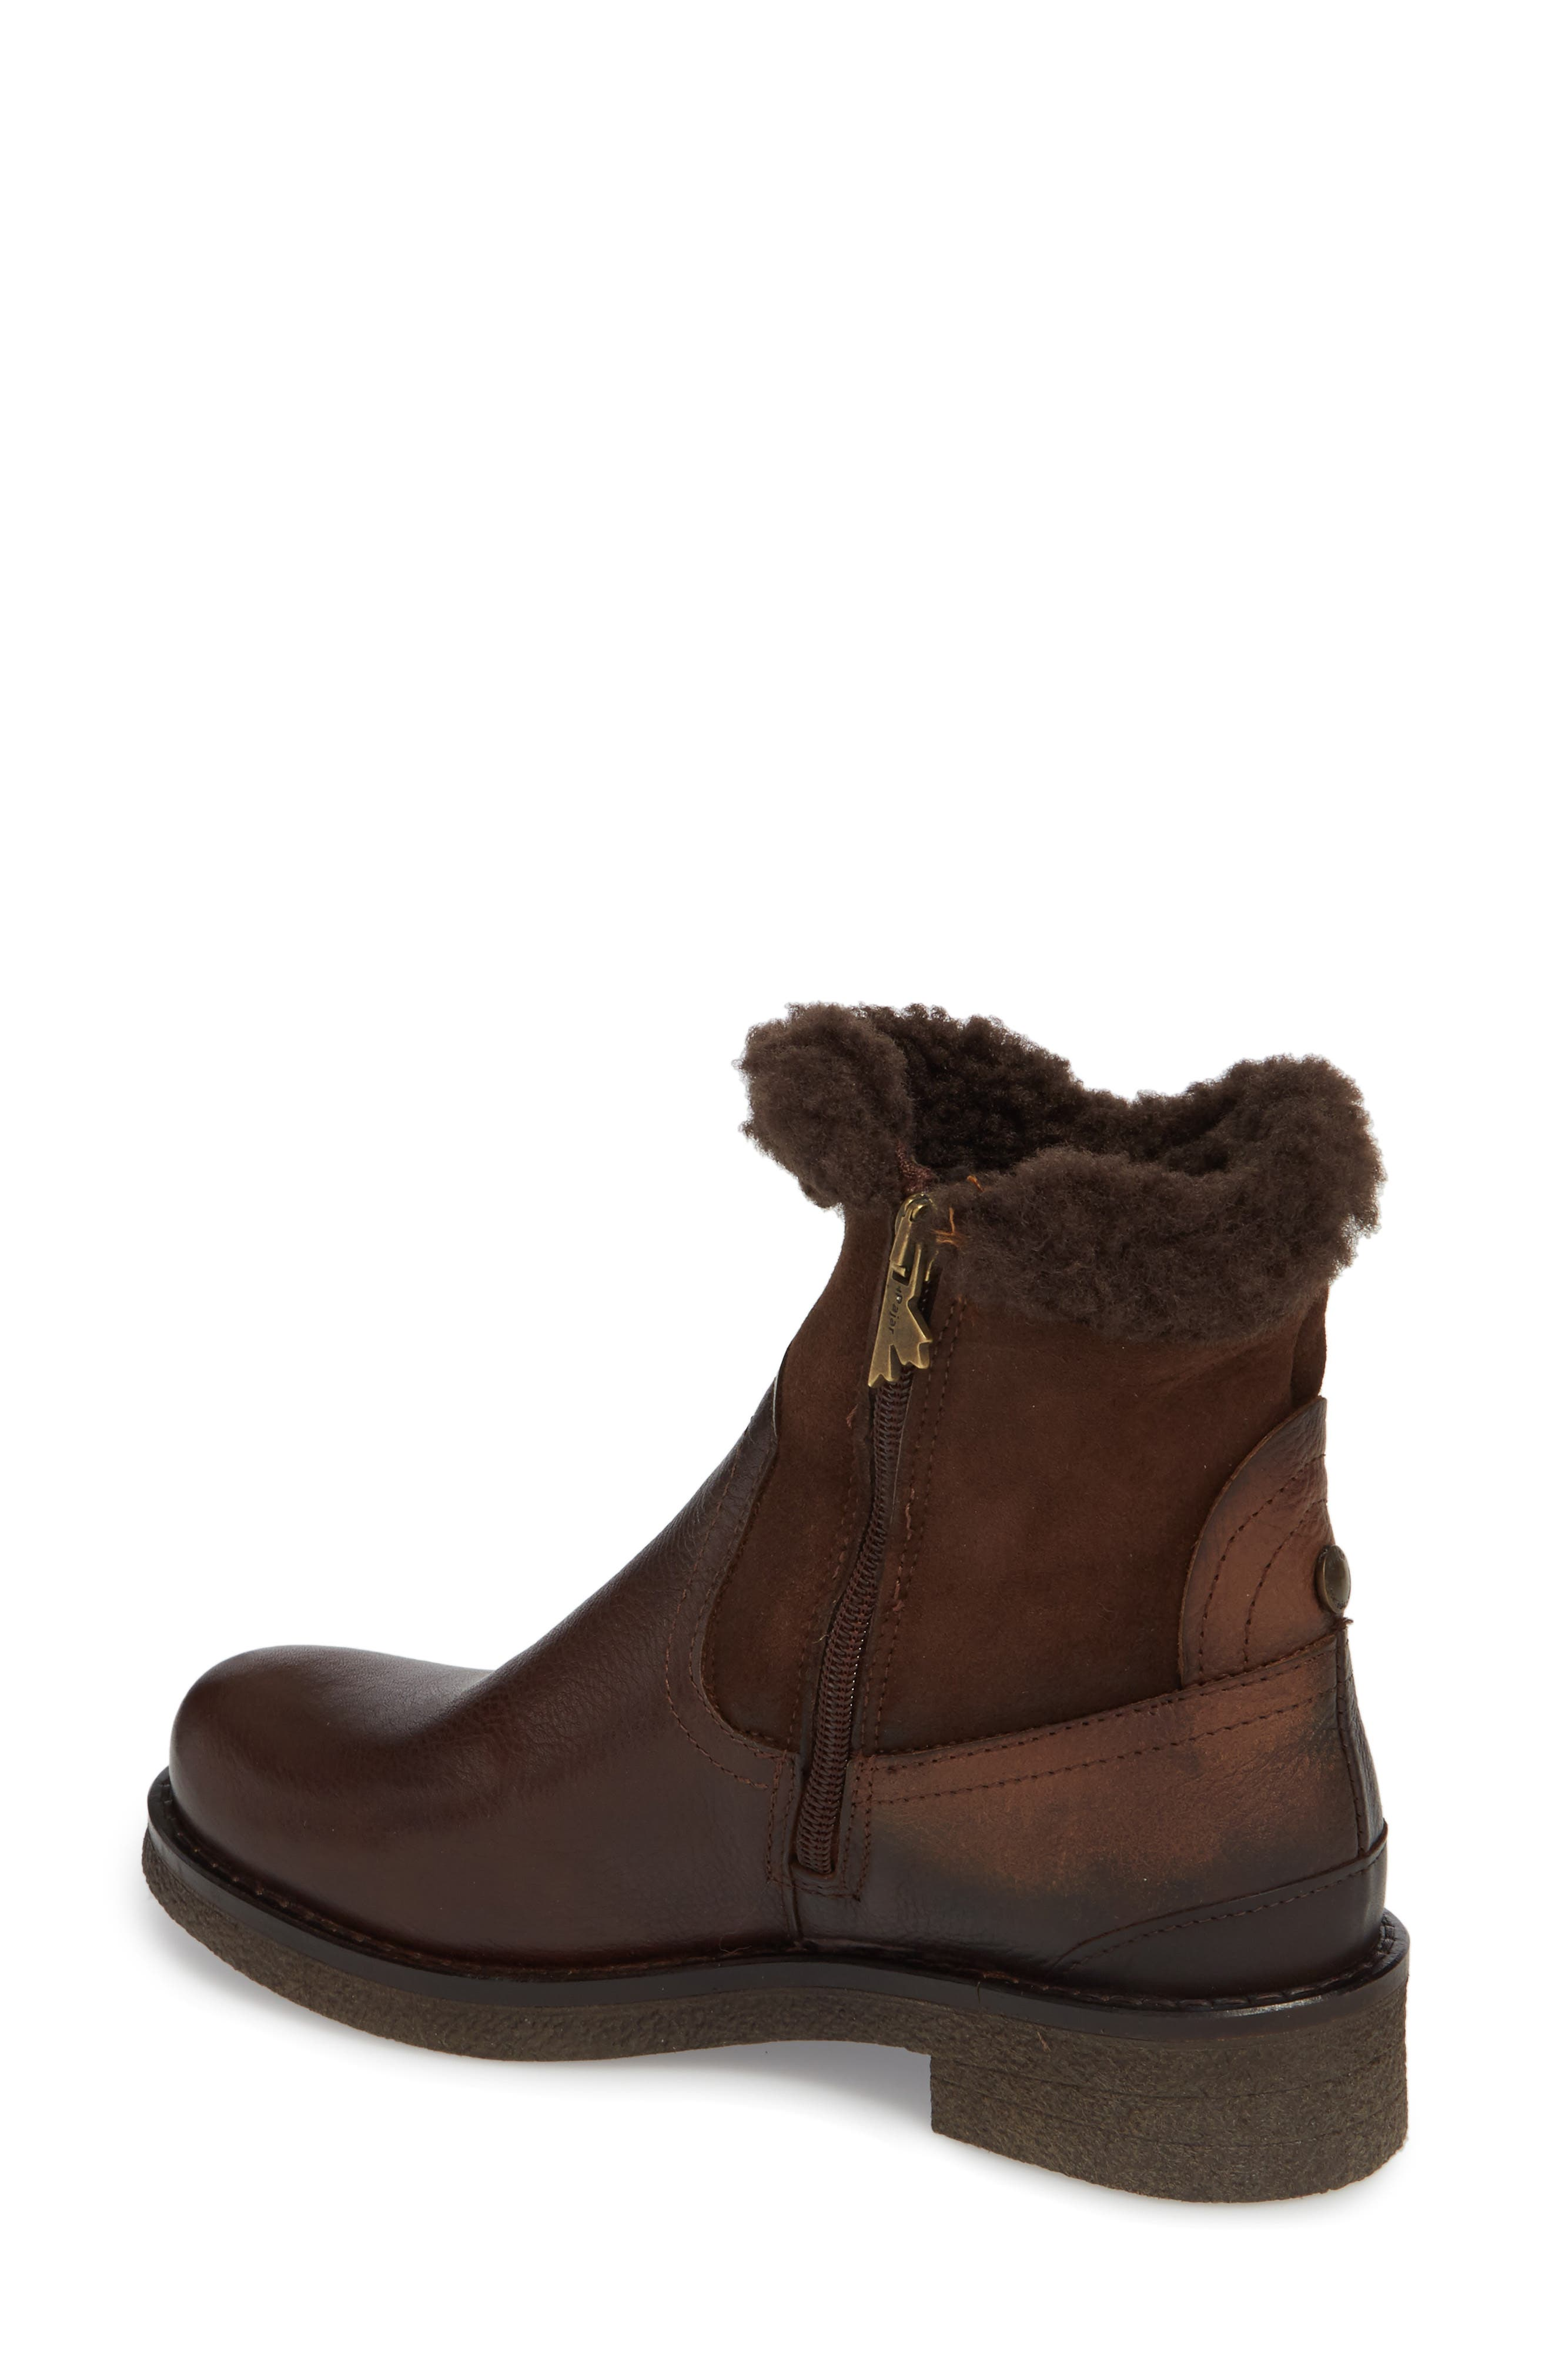 Odessa Waterproof Insulated Snow Boot,                             Alternate thumbnail 2, color,                             Brown Fur Leather